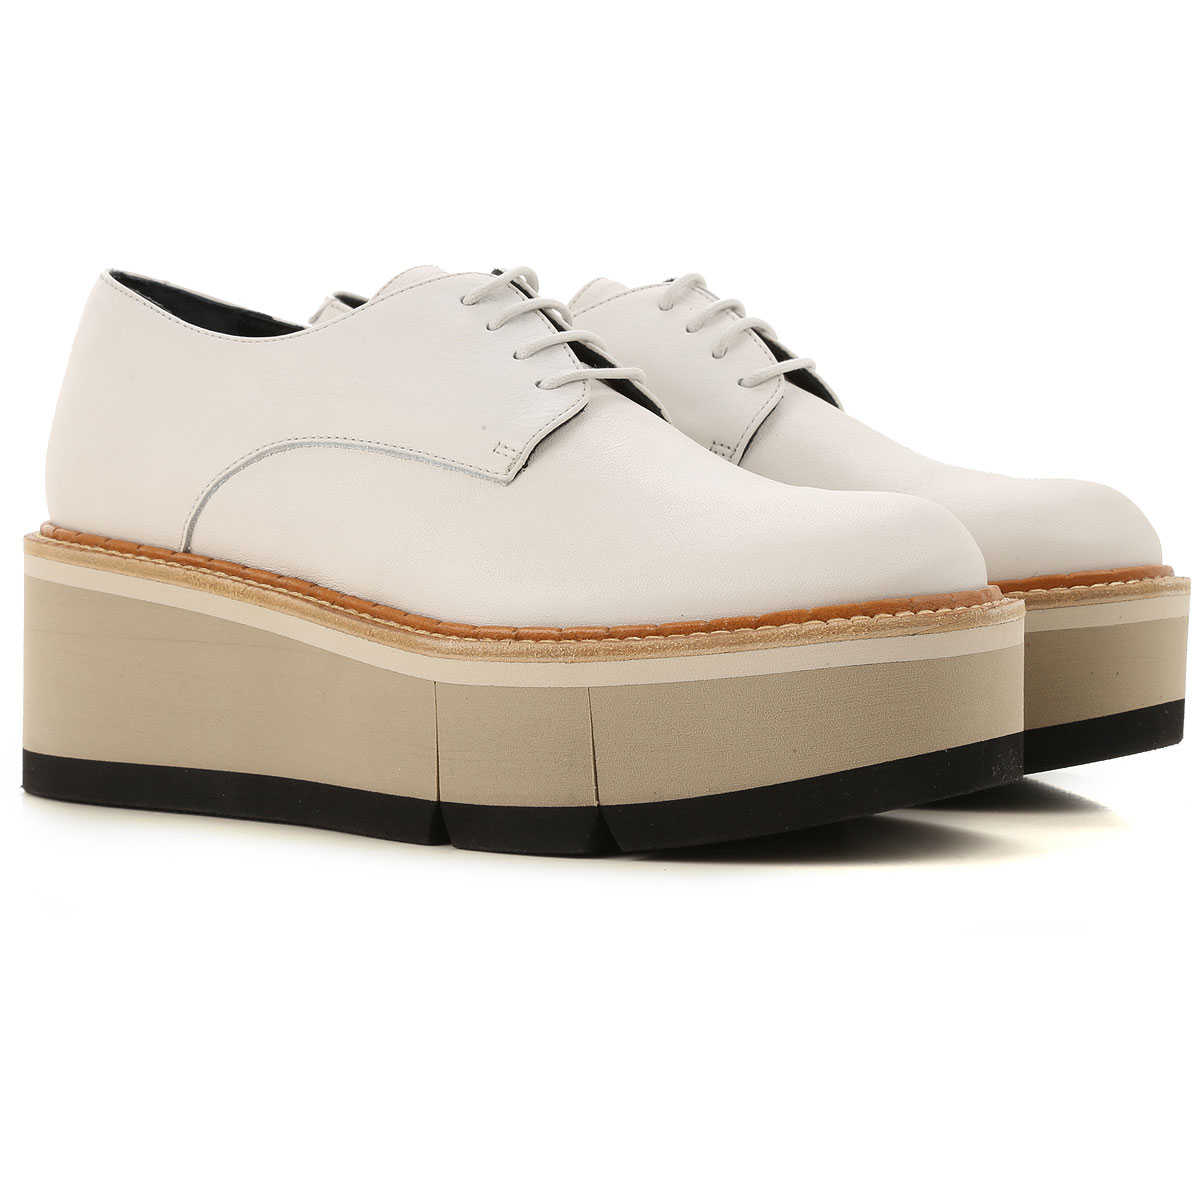 Paloma Barcelo Lace Up Shoes for Men Oxfords Derbies and Brogues SE - GOOFASH